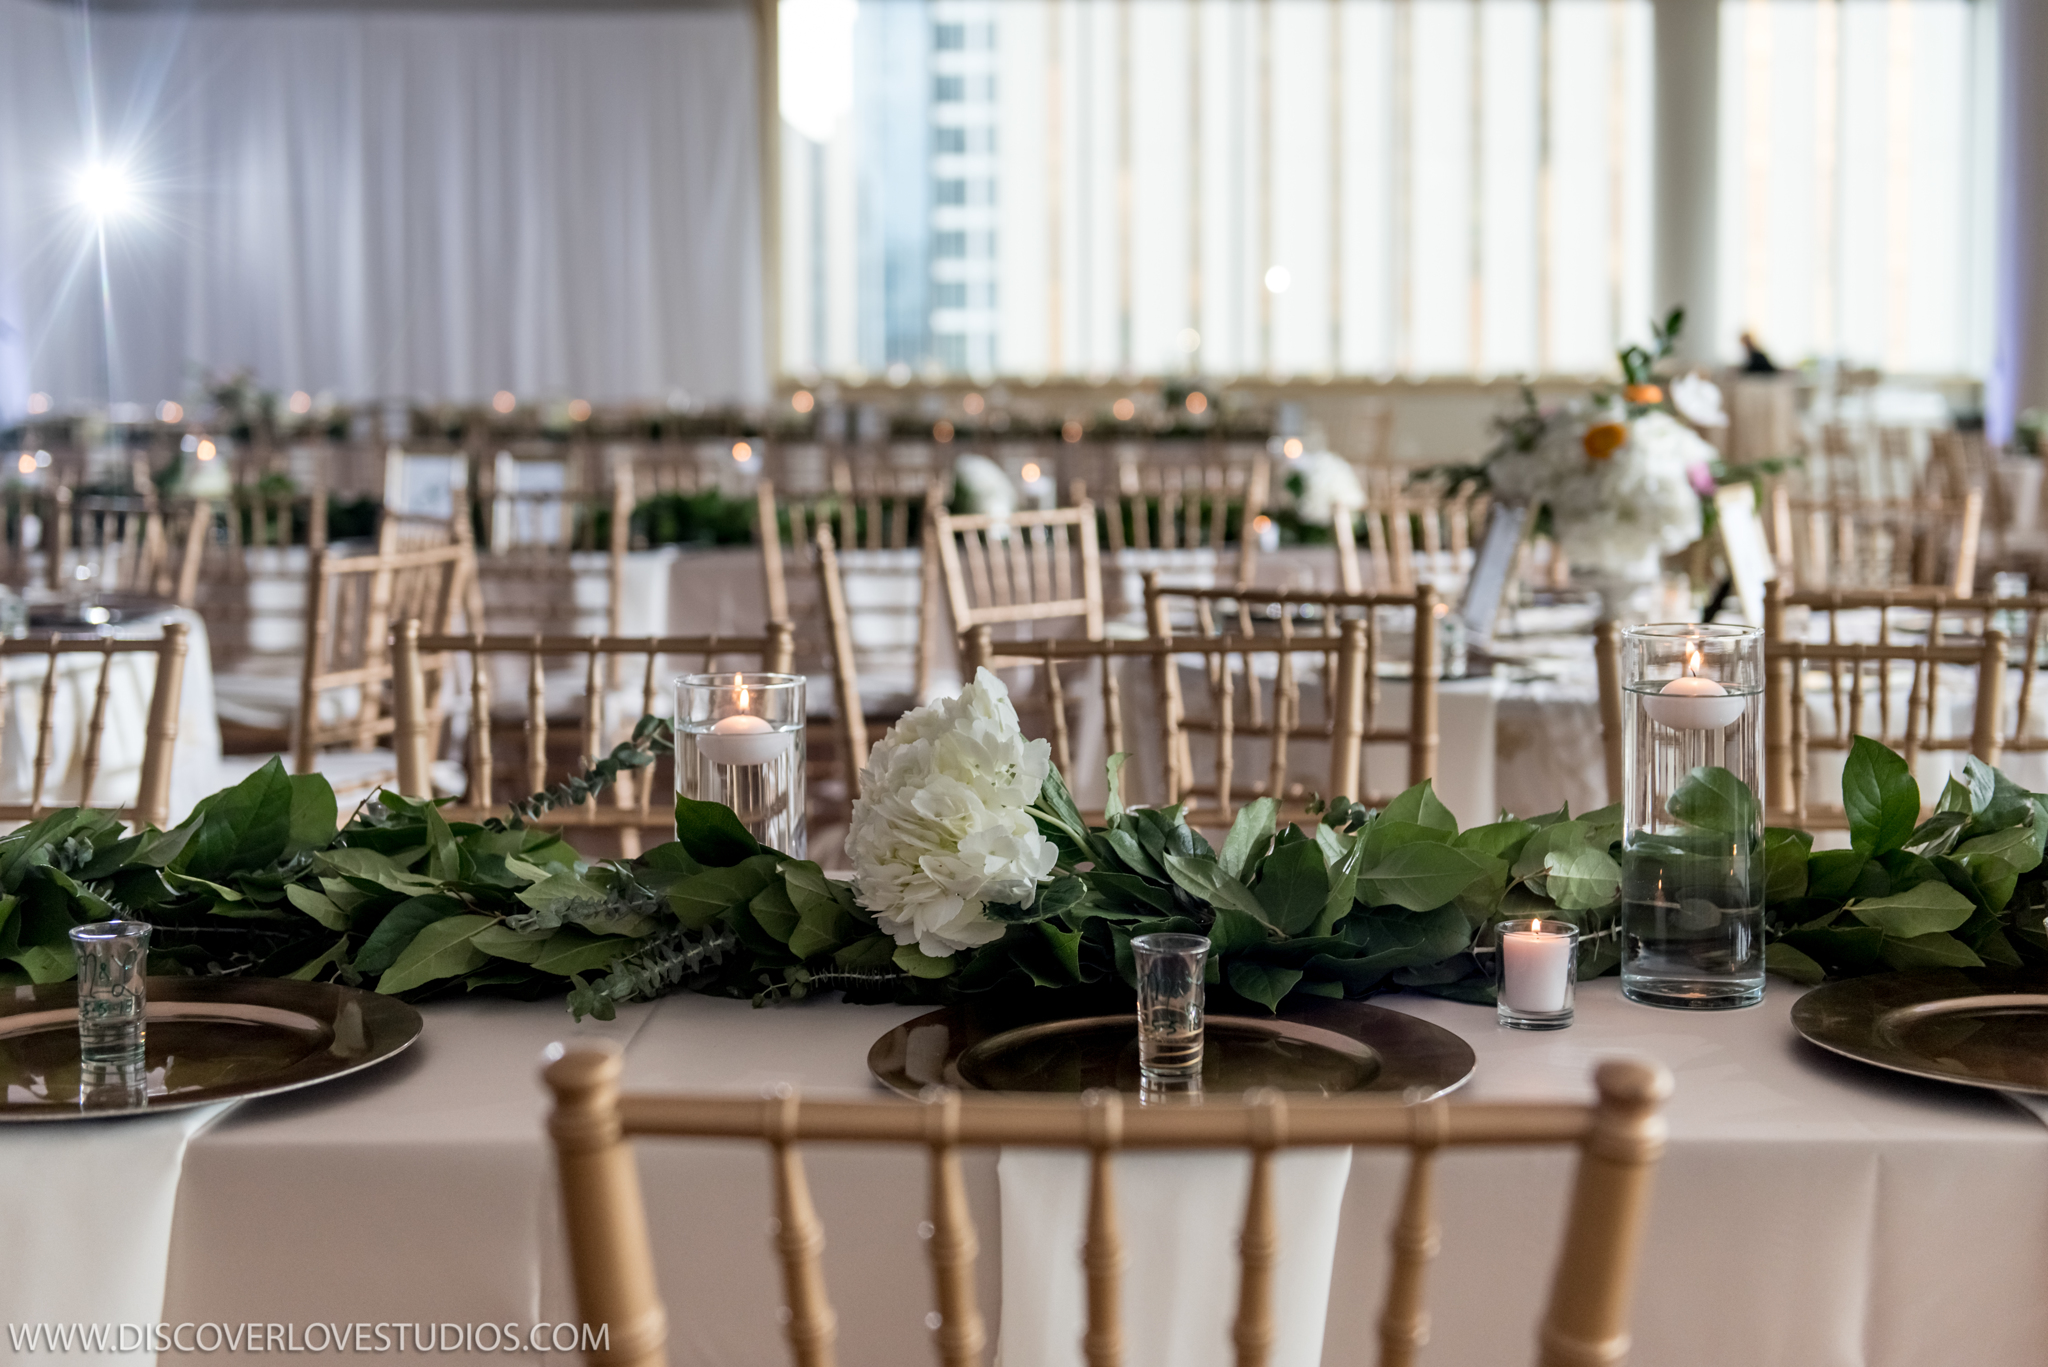 Discover Love Studios captures wedding reception at the Mint Museum Uptown coordinated by Magnificent Moments Weddings